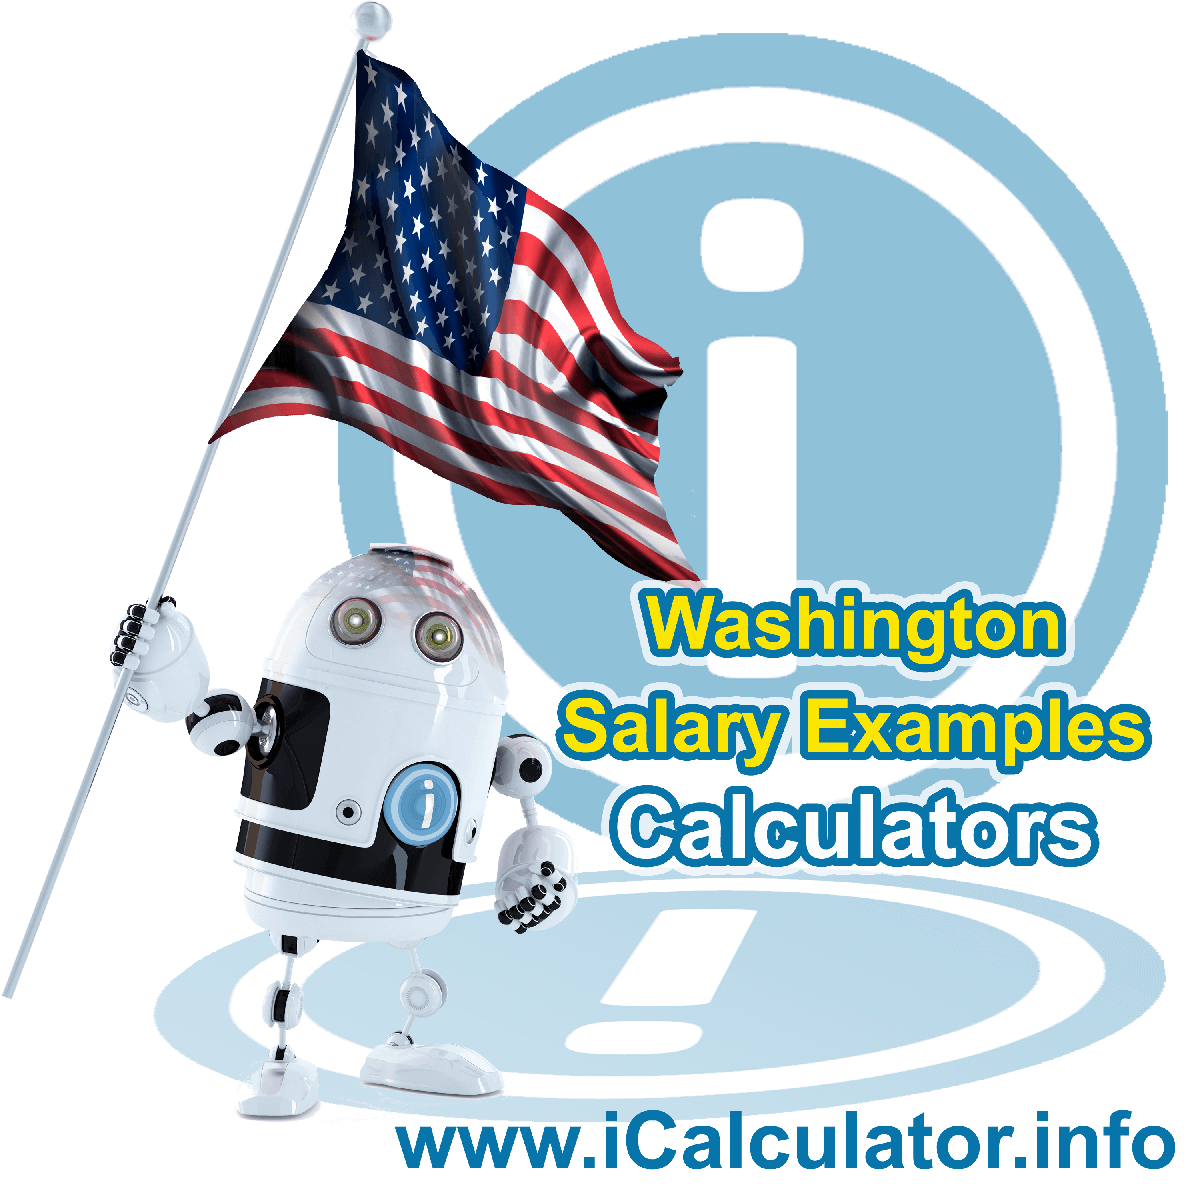 Washington Salary Example for $100,000.00 in 2020 | iCalculator | $100,000.00 salary example for employee and employer paying Washington State tincome taxes. Detailed salary after tax calculation including Washington State Tax, Federal State Tax, Medicare Deductions, Social Security, Capital Gains and other income tax and salary deductions complete with supporting Washington state tax tables